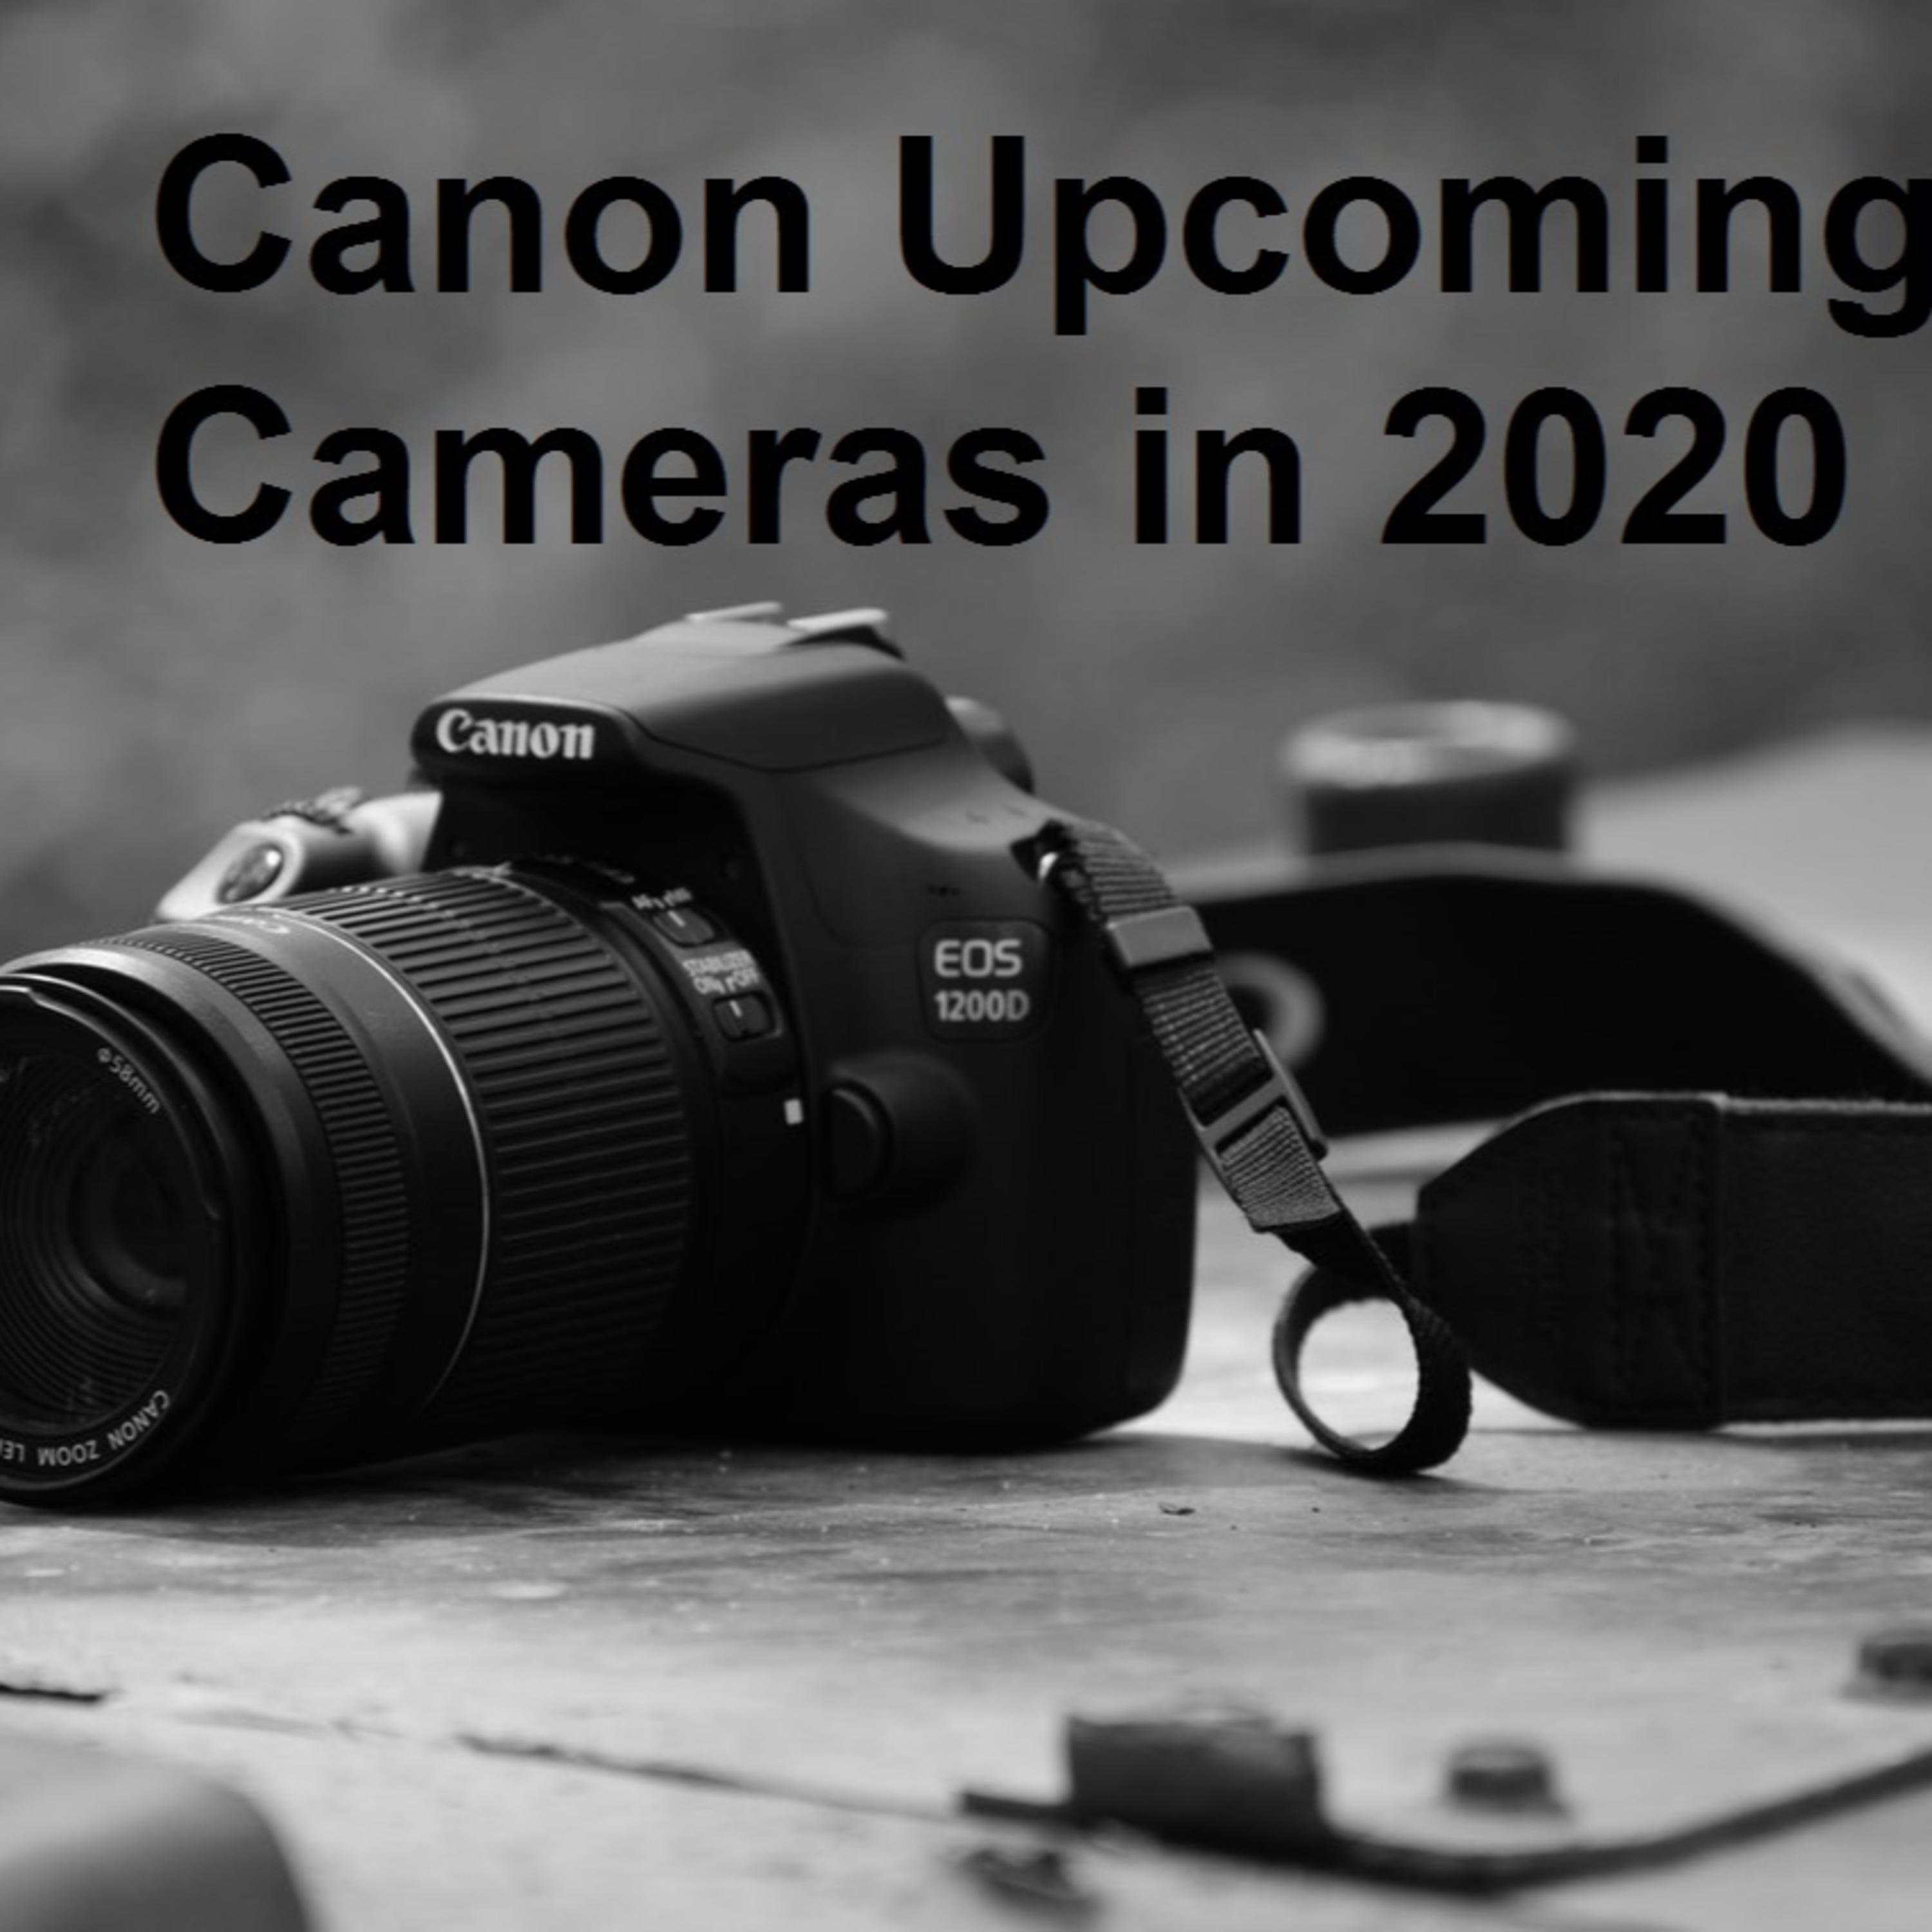 Michael William Paul Reviews and Upcoming Cameras in 2020